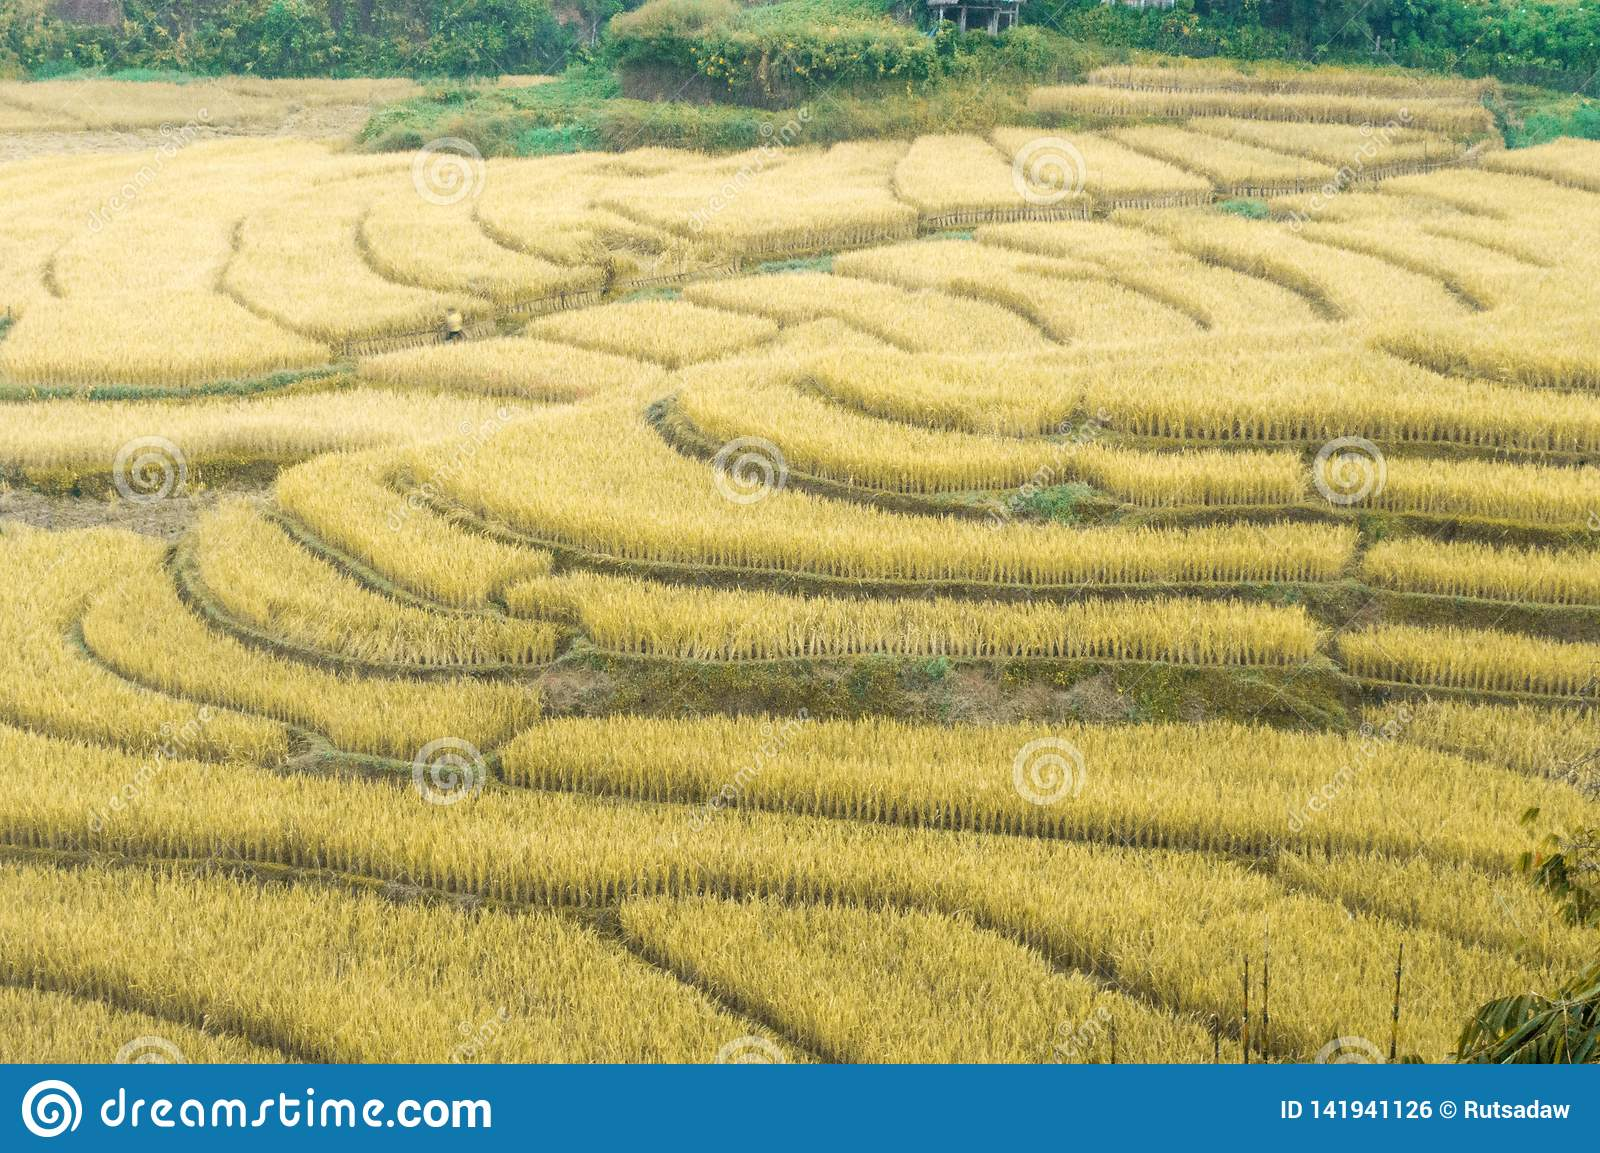 Beautiful golden yellow rice fields